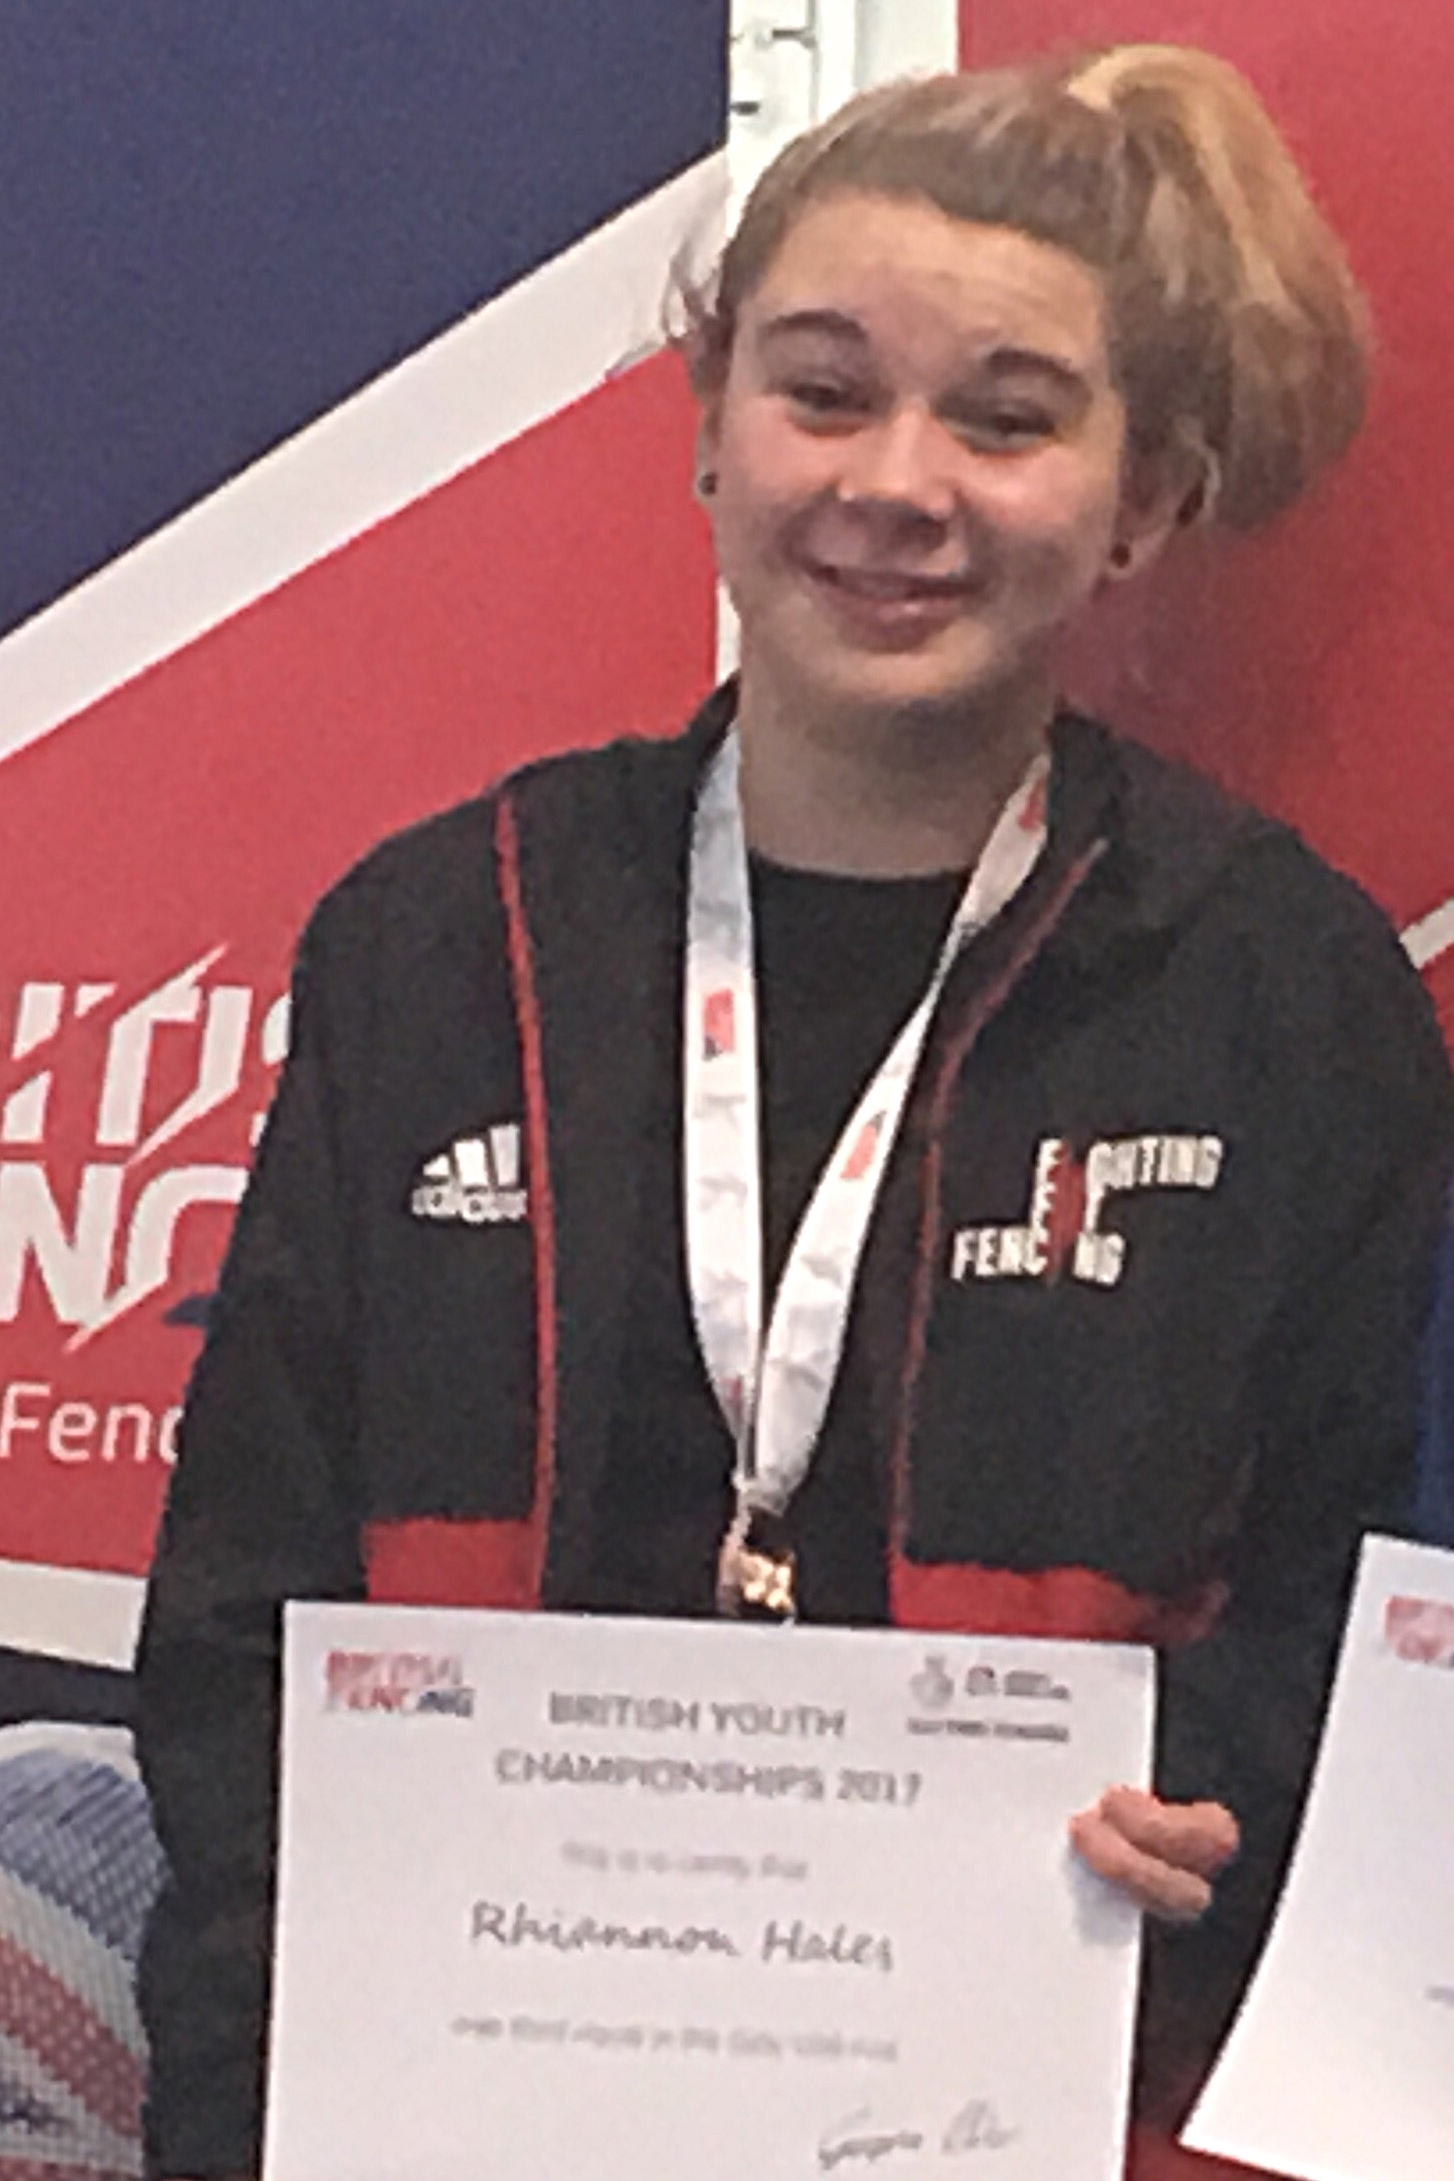 Rhi become National Champion in her age group and has represented ENG at U15 & GBR U17